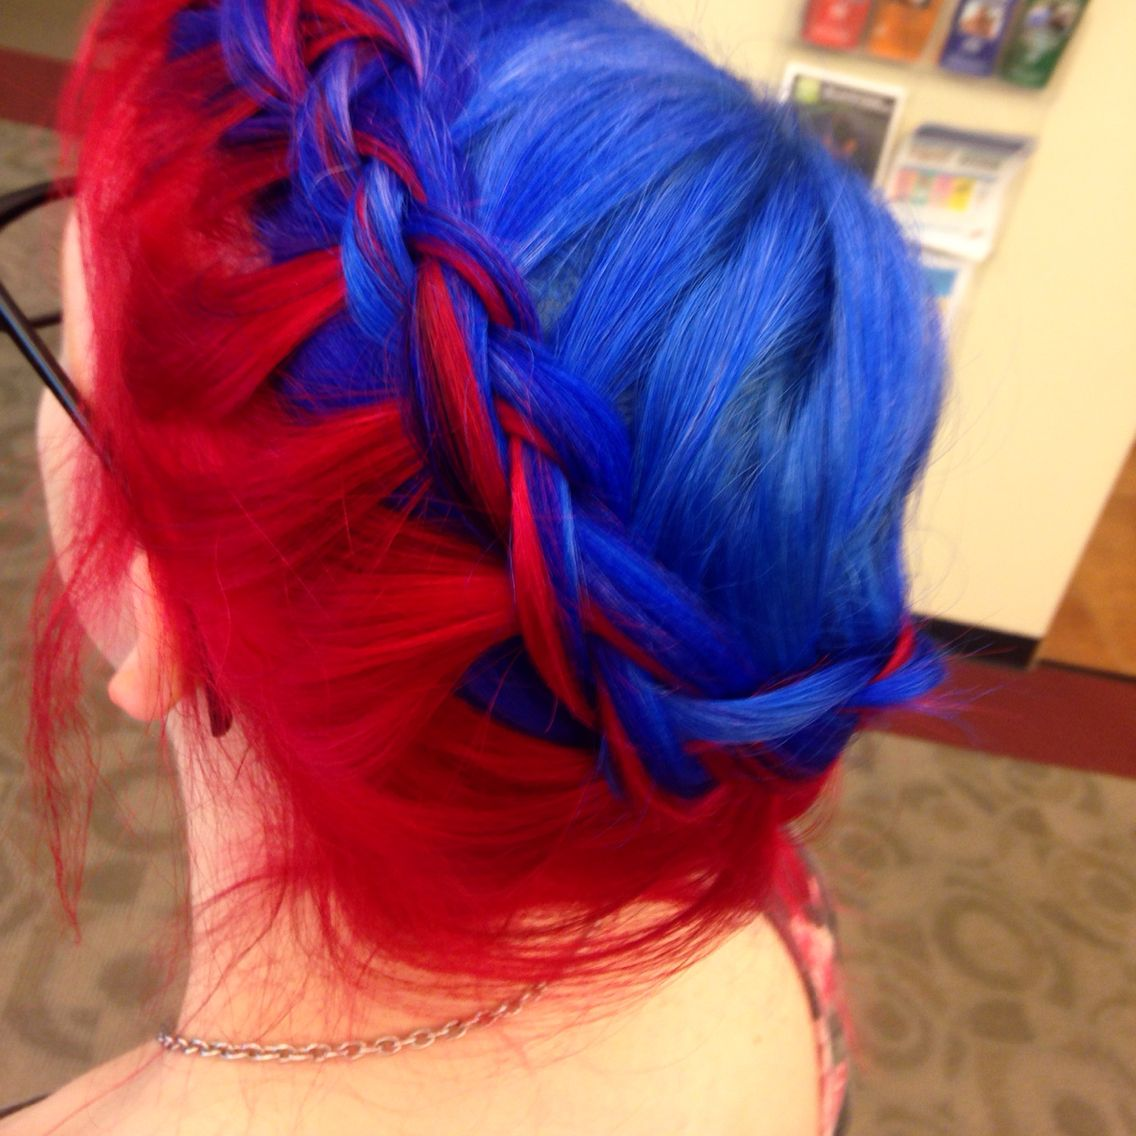 Blue And Red Hair Braided Colors Are Both From Arctic Fox Hair Dye 3 Color Done By Me Braid Done By My Lovely C Hair Styles White Hair Color Cool Hair Color